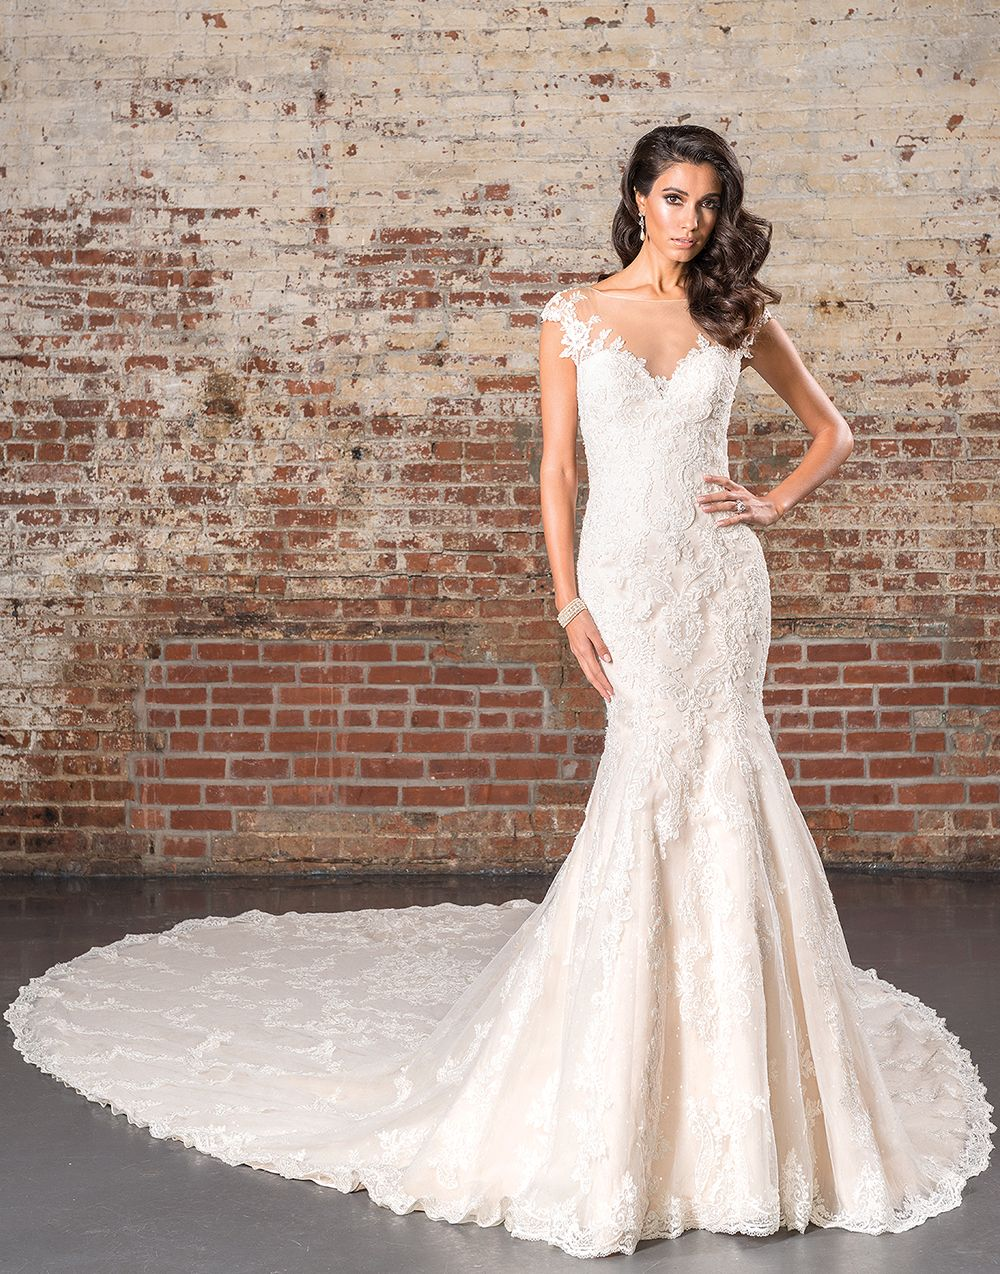 Justin Alexander signature wedding dresses style 9845 | Wedding ...